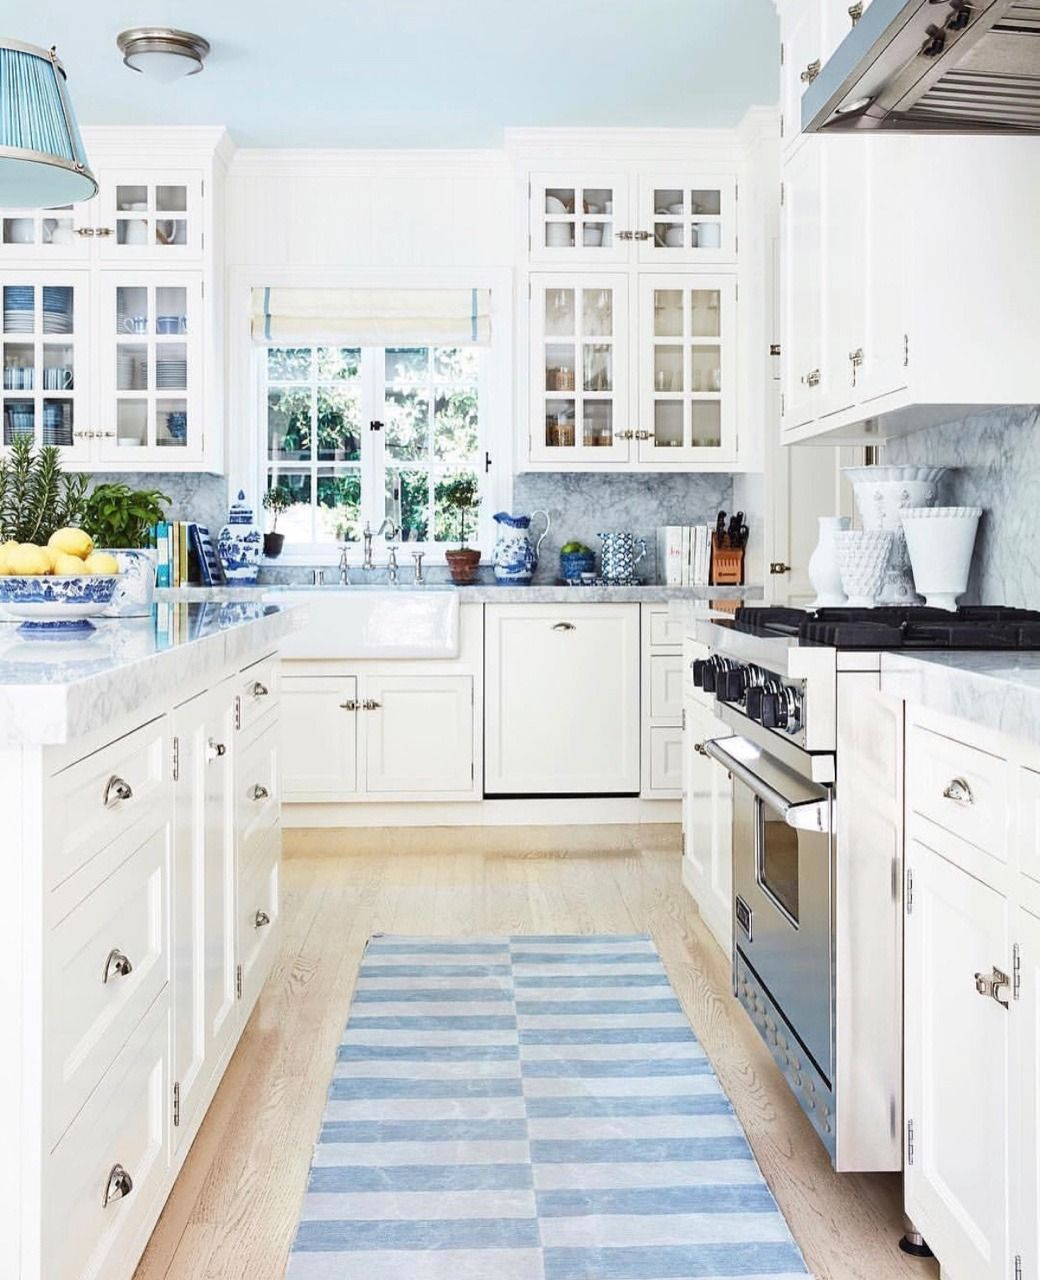 Motherofsoutherncharm ucclassic blue and white source the cottage